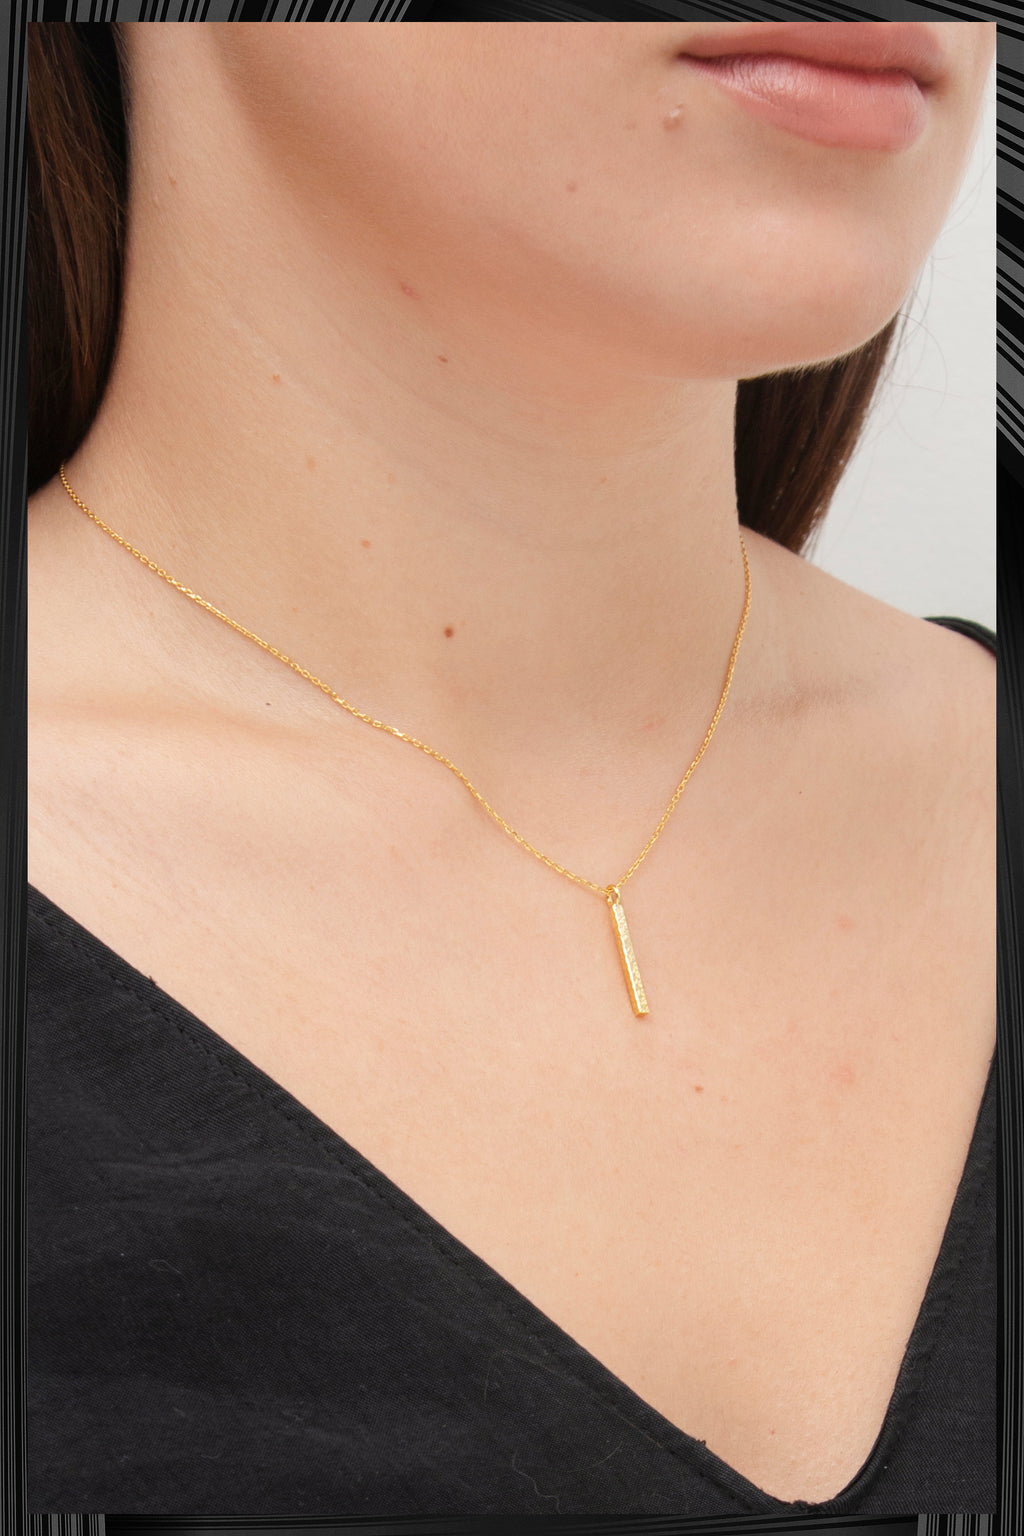 Gold Line Necklace | Free Delivery - Quick Shipping